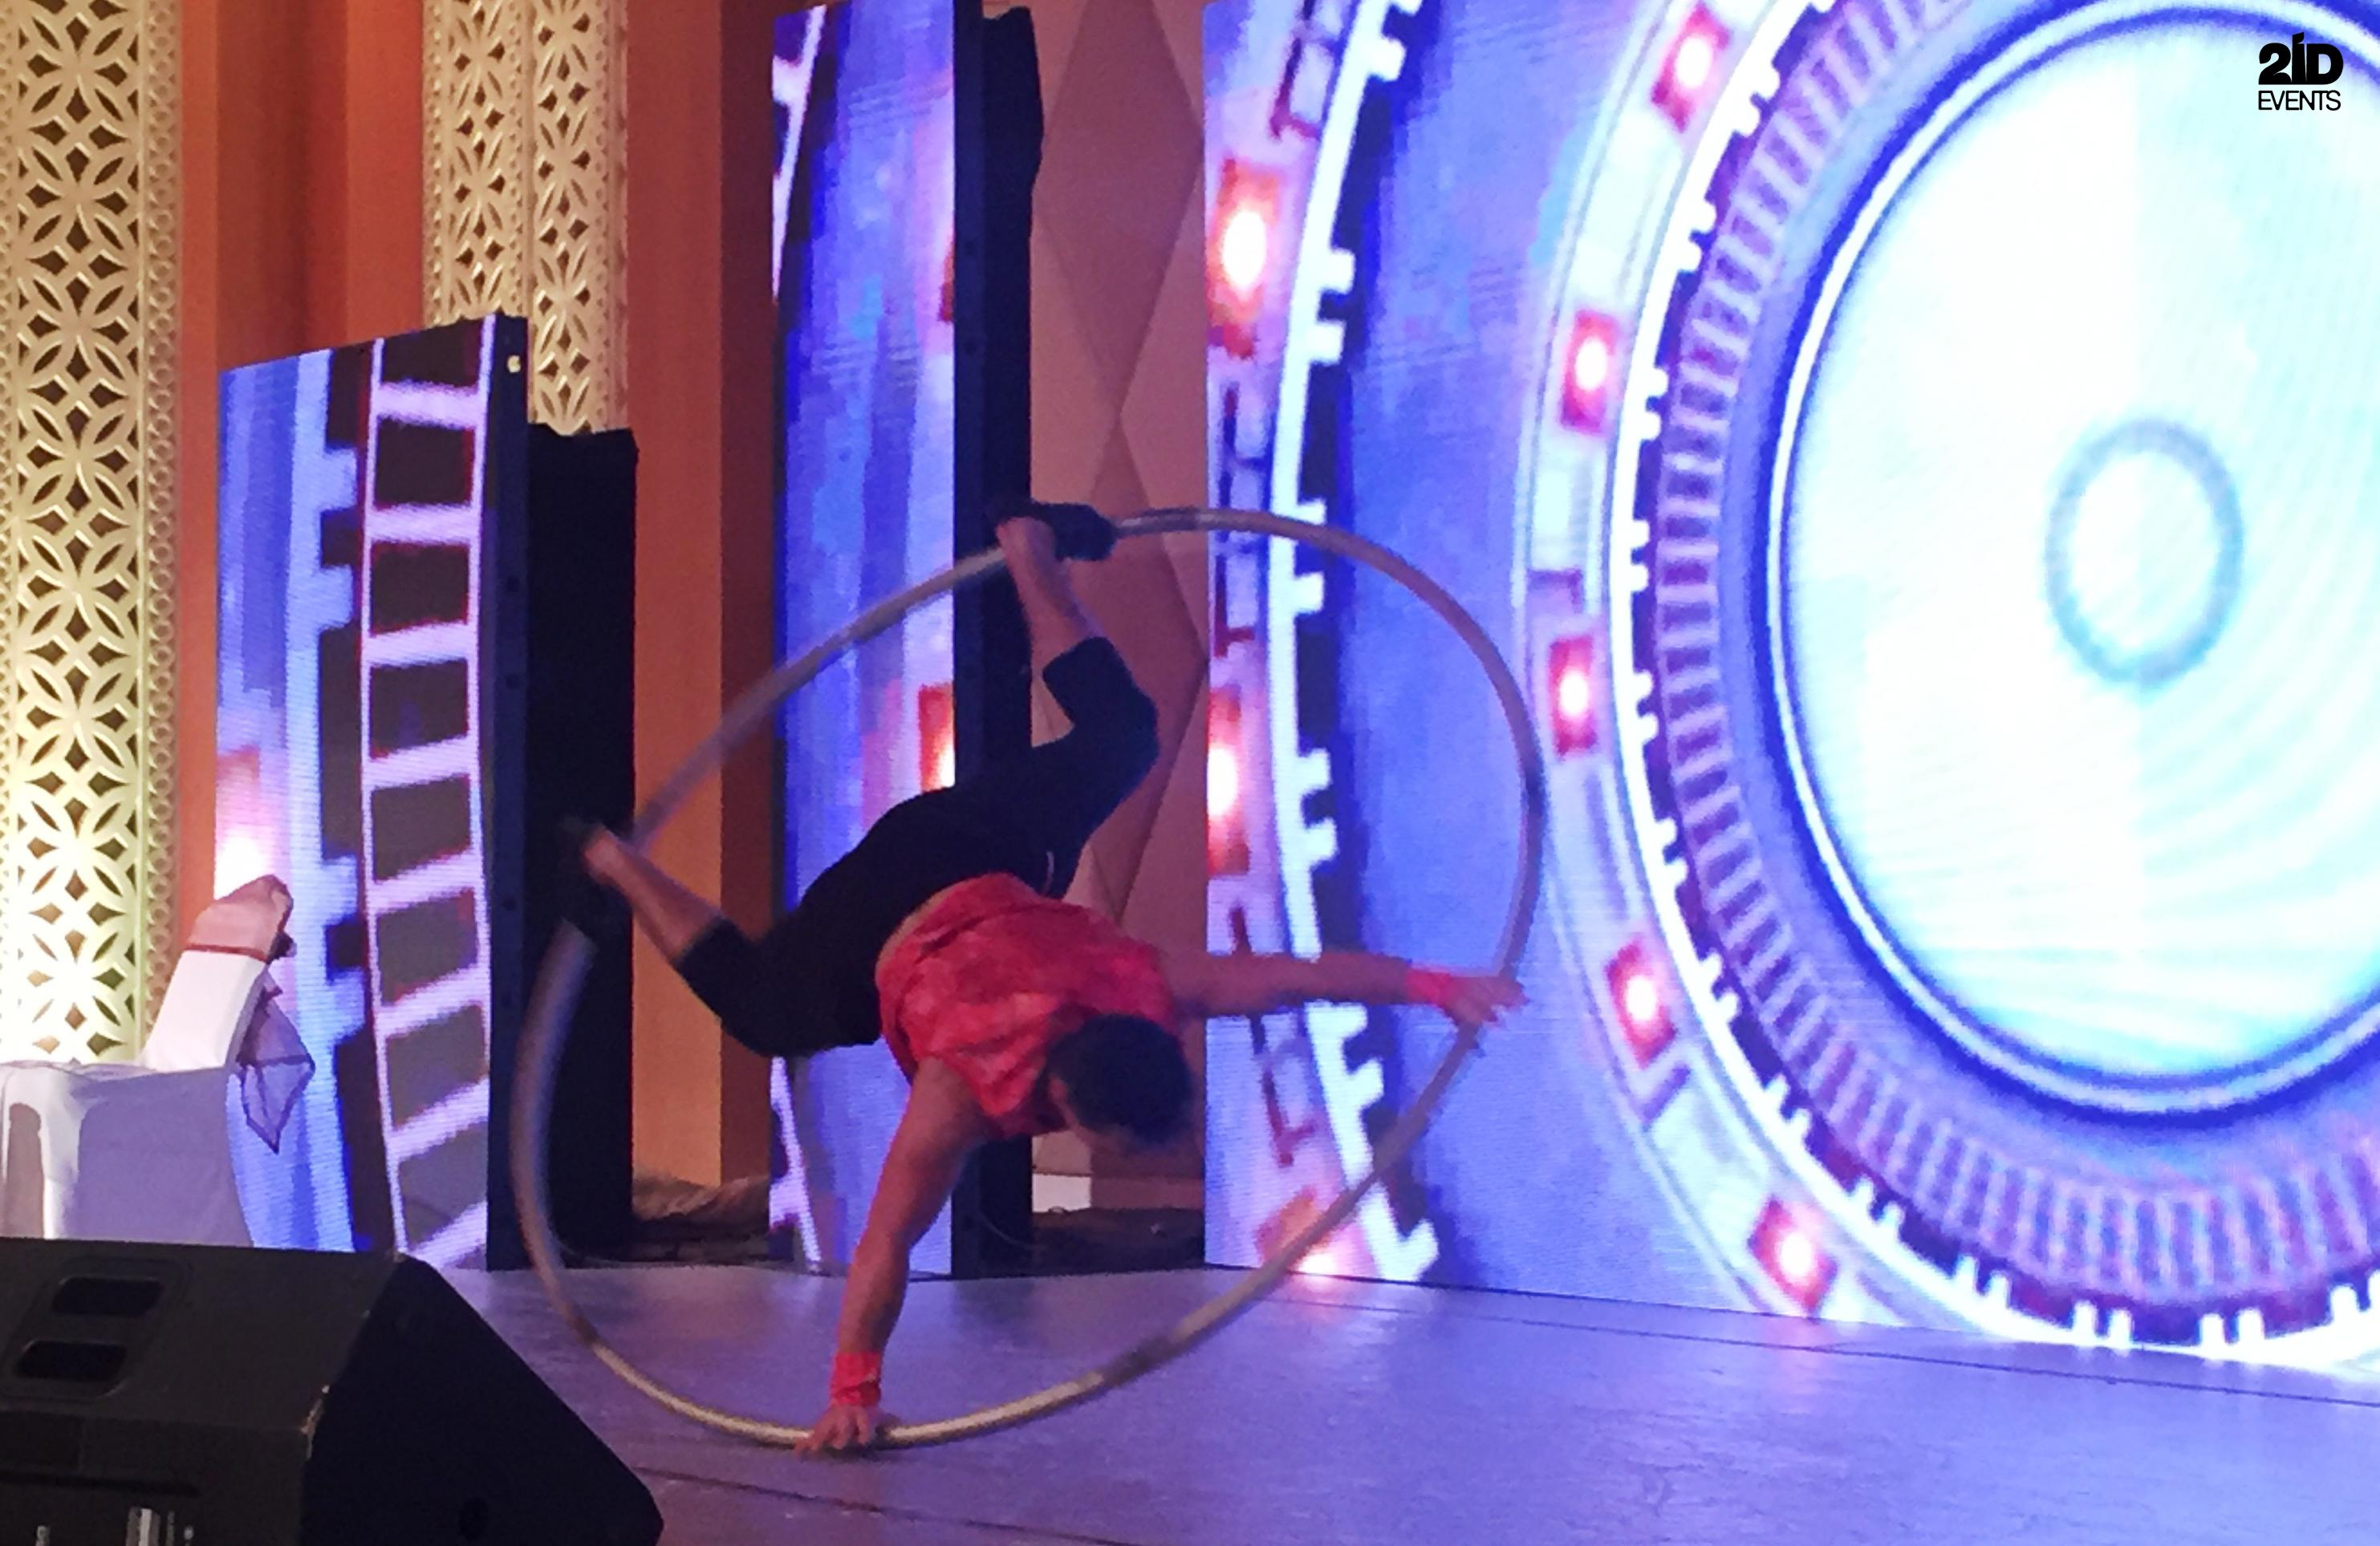 Cyr Wheel Show for product launches